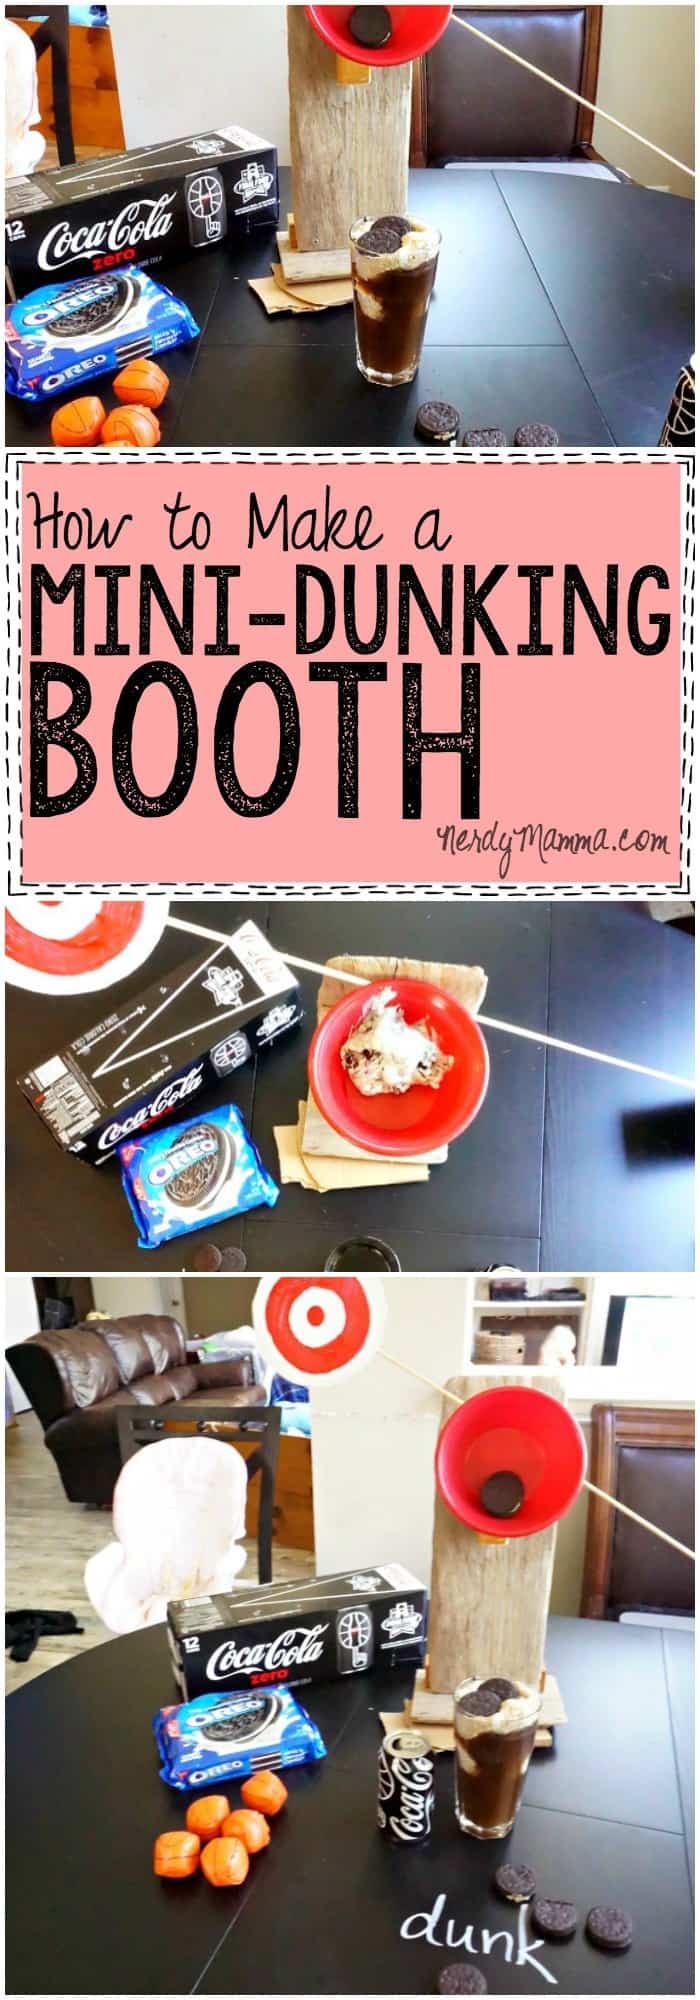 I love this quick tutorial for making a mini-dunking booth. It would be PERFECT for a party...LOL!